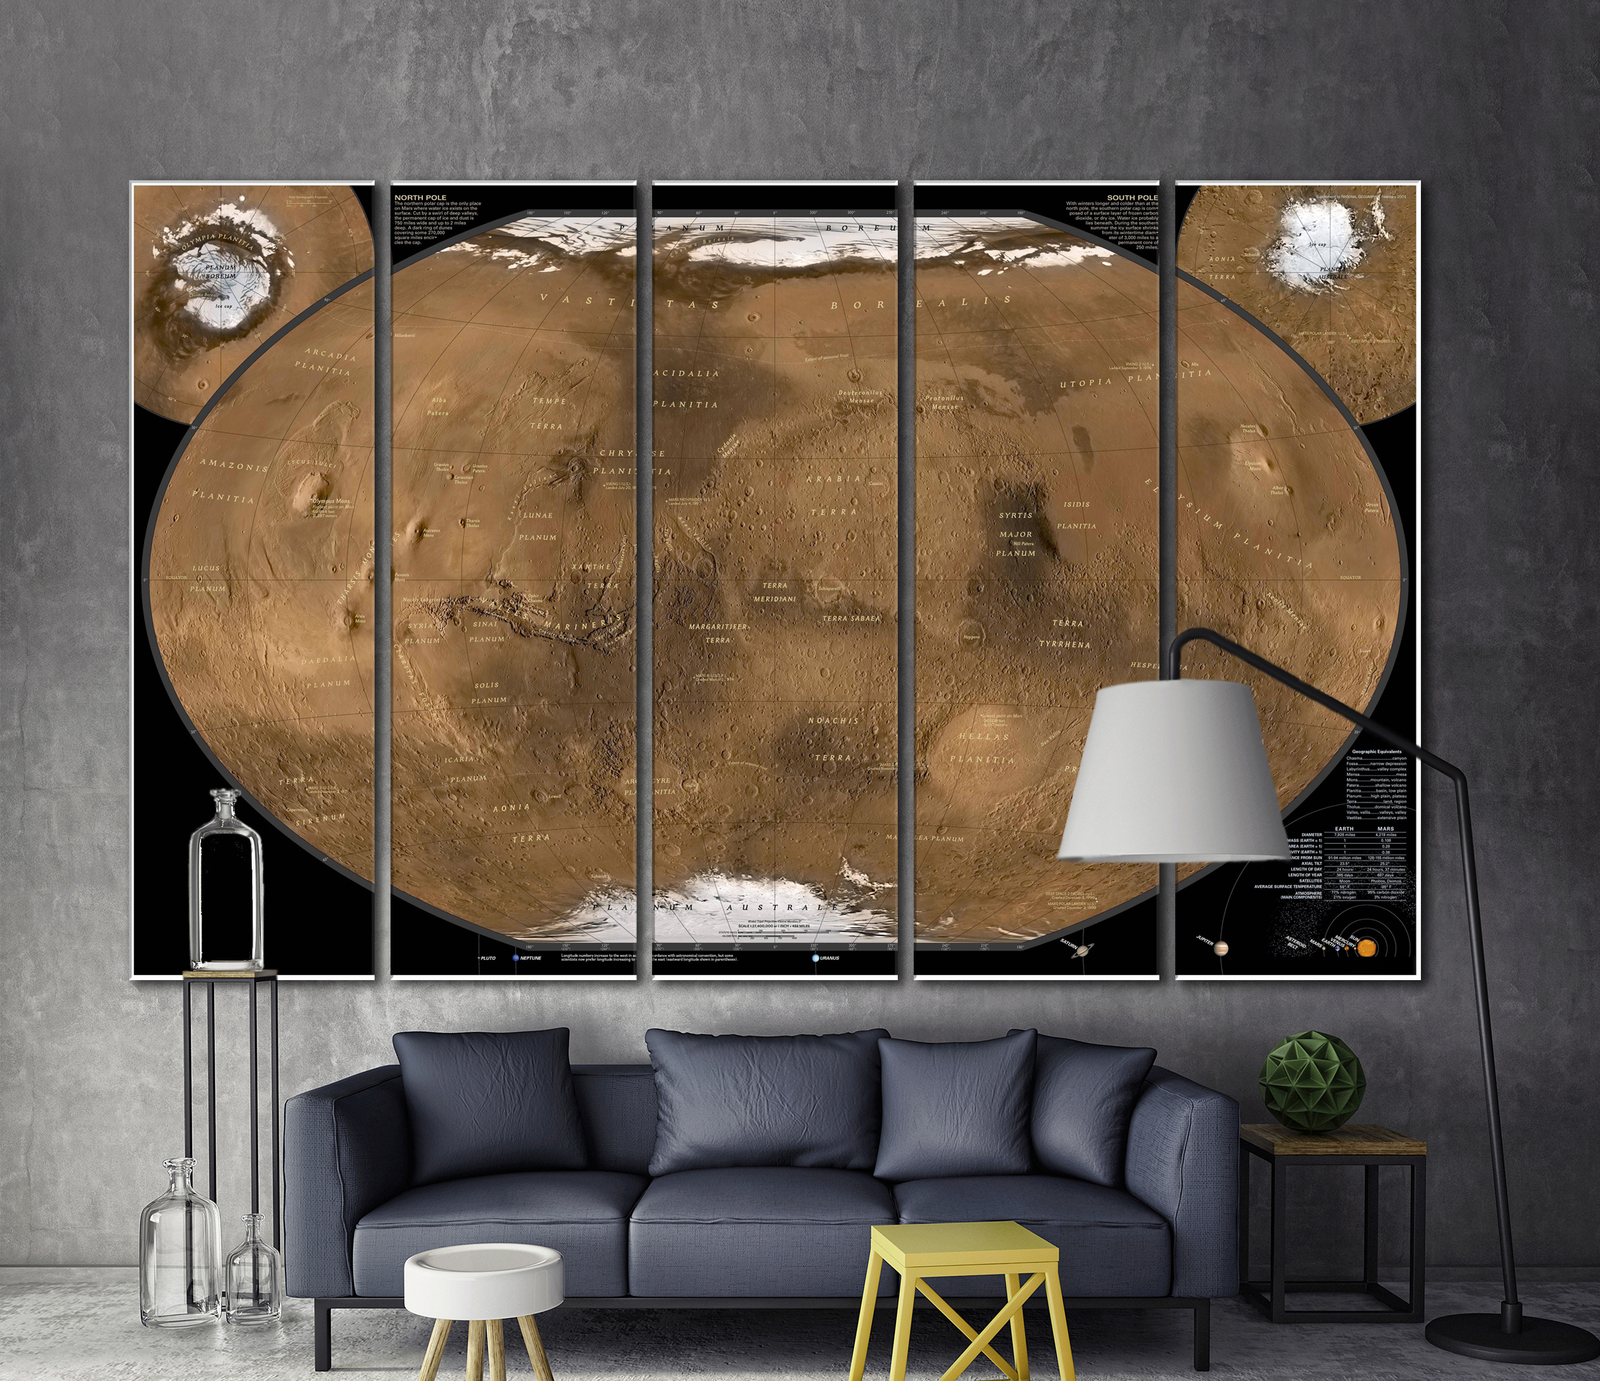 Modern wall art large wall art mars map decor for home for Modern home decor market